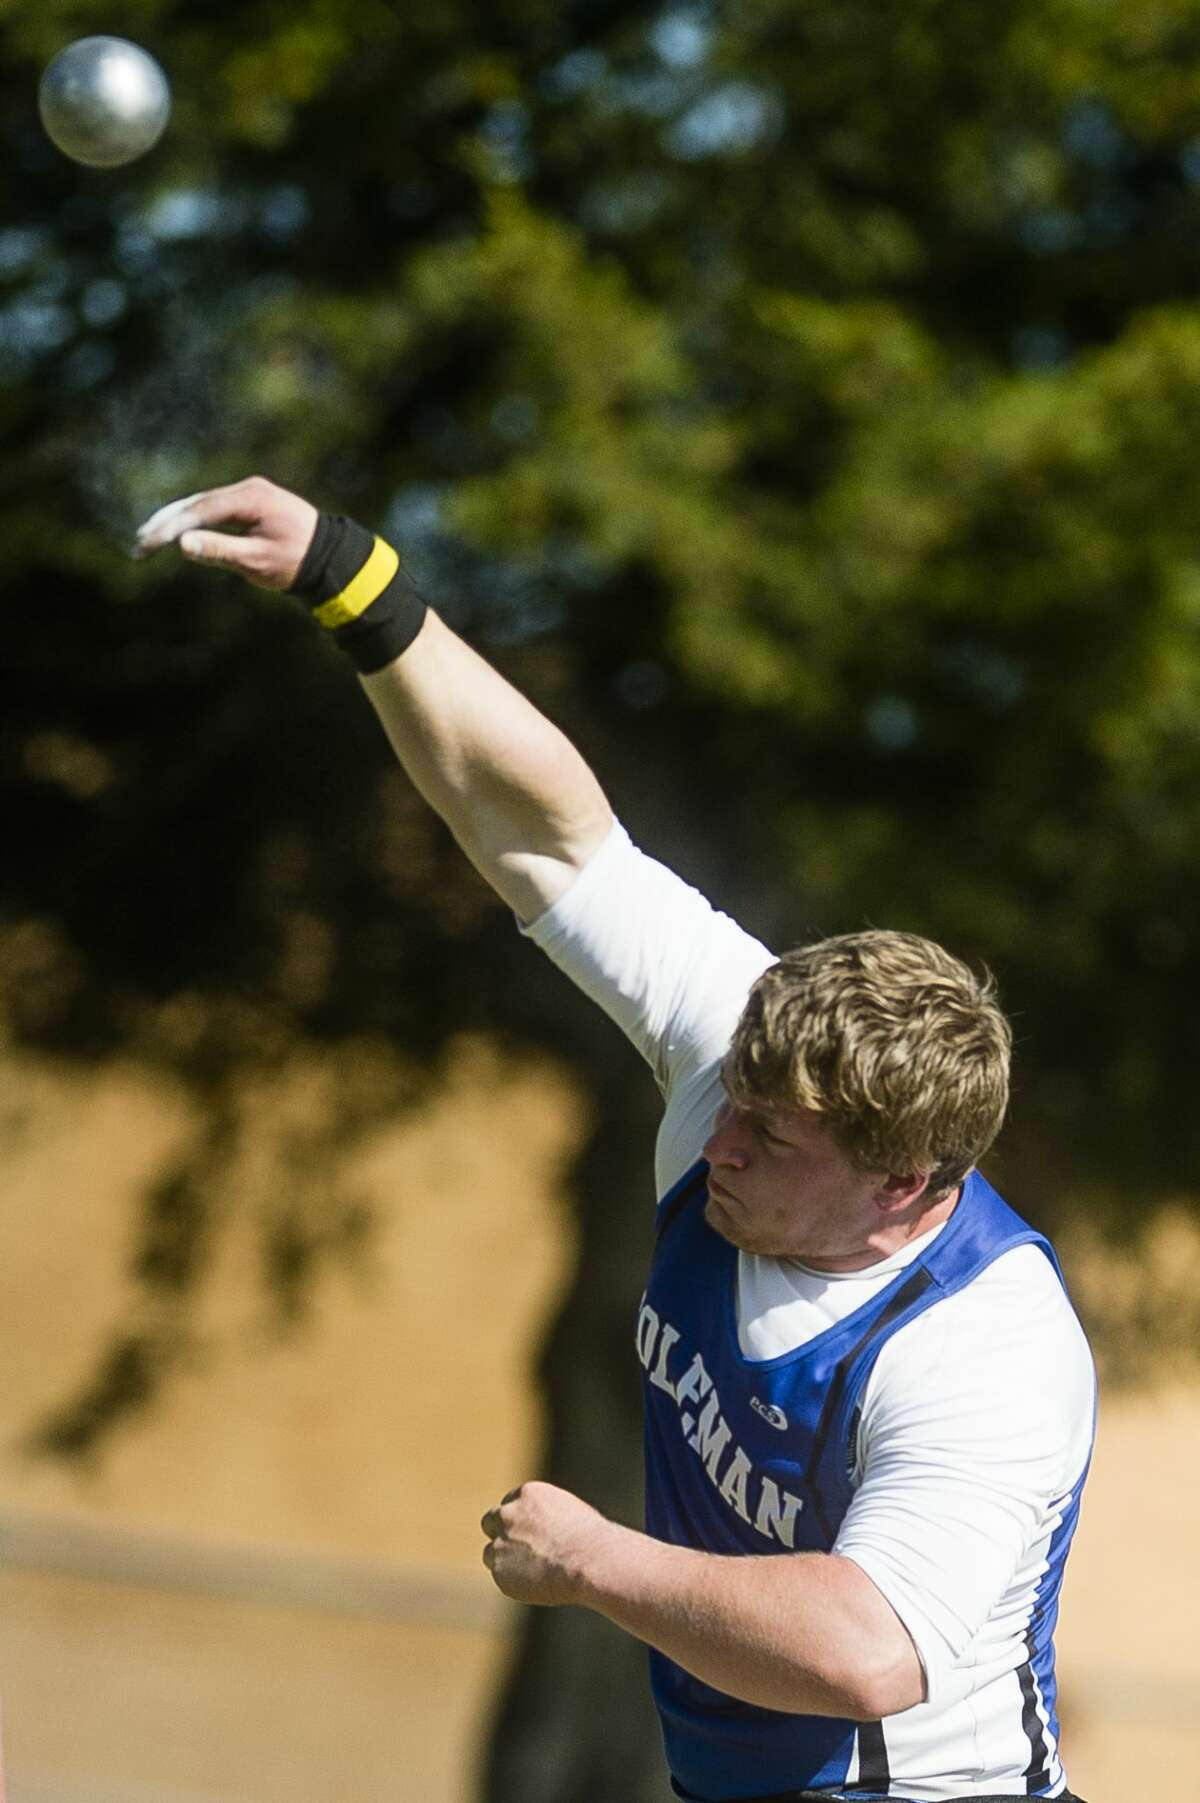 Coleman senior Cody Finney competes in the shot put event during a track and field meet on Wednesday, May 23, 2018 at Coleman High School. (Katy Kildee/kkildee@mdn.net)